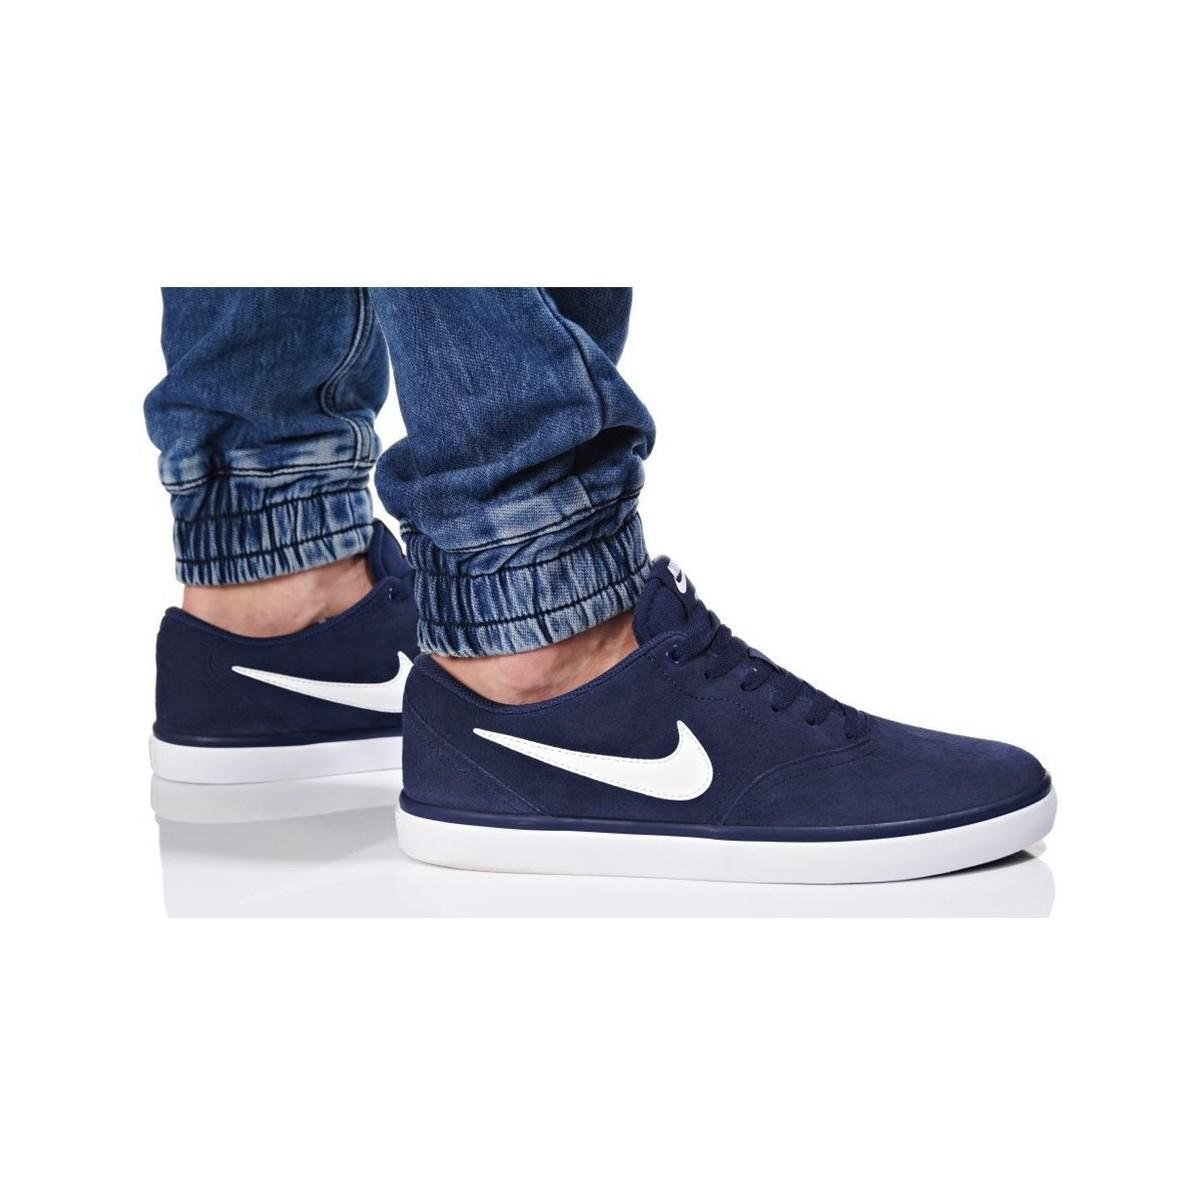 abfc573c3061 Nike - Blue Sb Check Solar Men s Shoes (trainers) In Multicolour for Men -.  View fullscreen